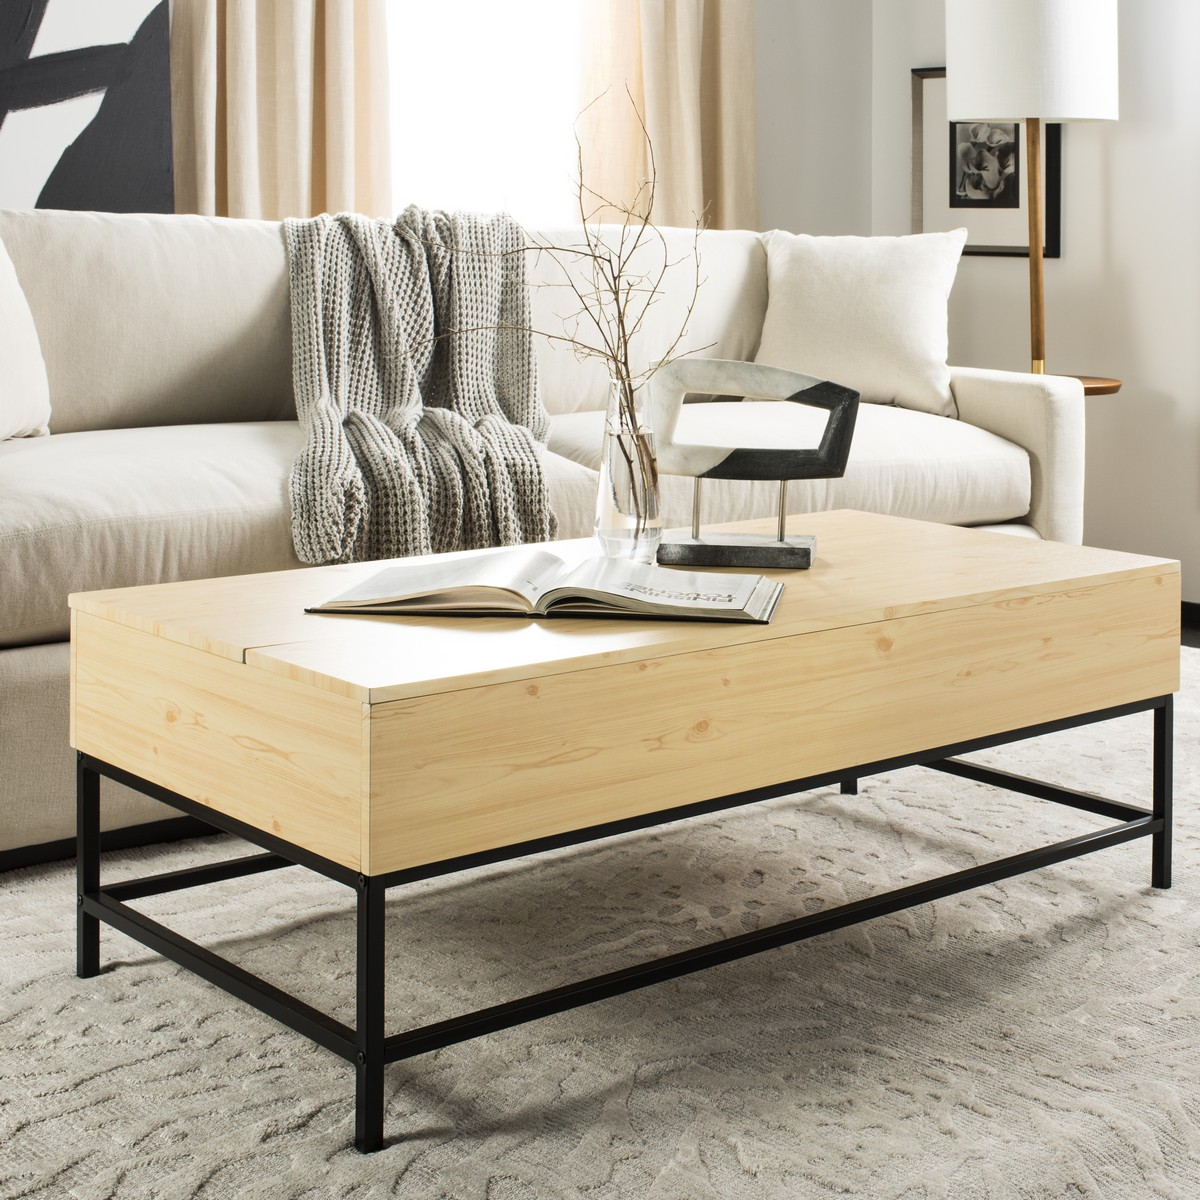 Crafted With A Light Oak Finish Its Easy Lift Top Makes Storage Breeze Clean Lines And Neutral Black Metal Legs Make It Endlessly Versatile